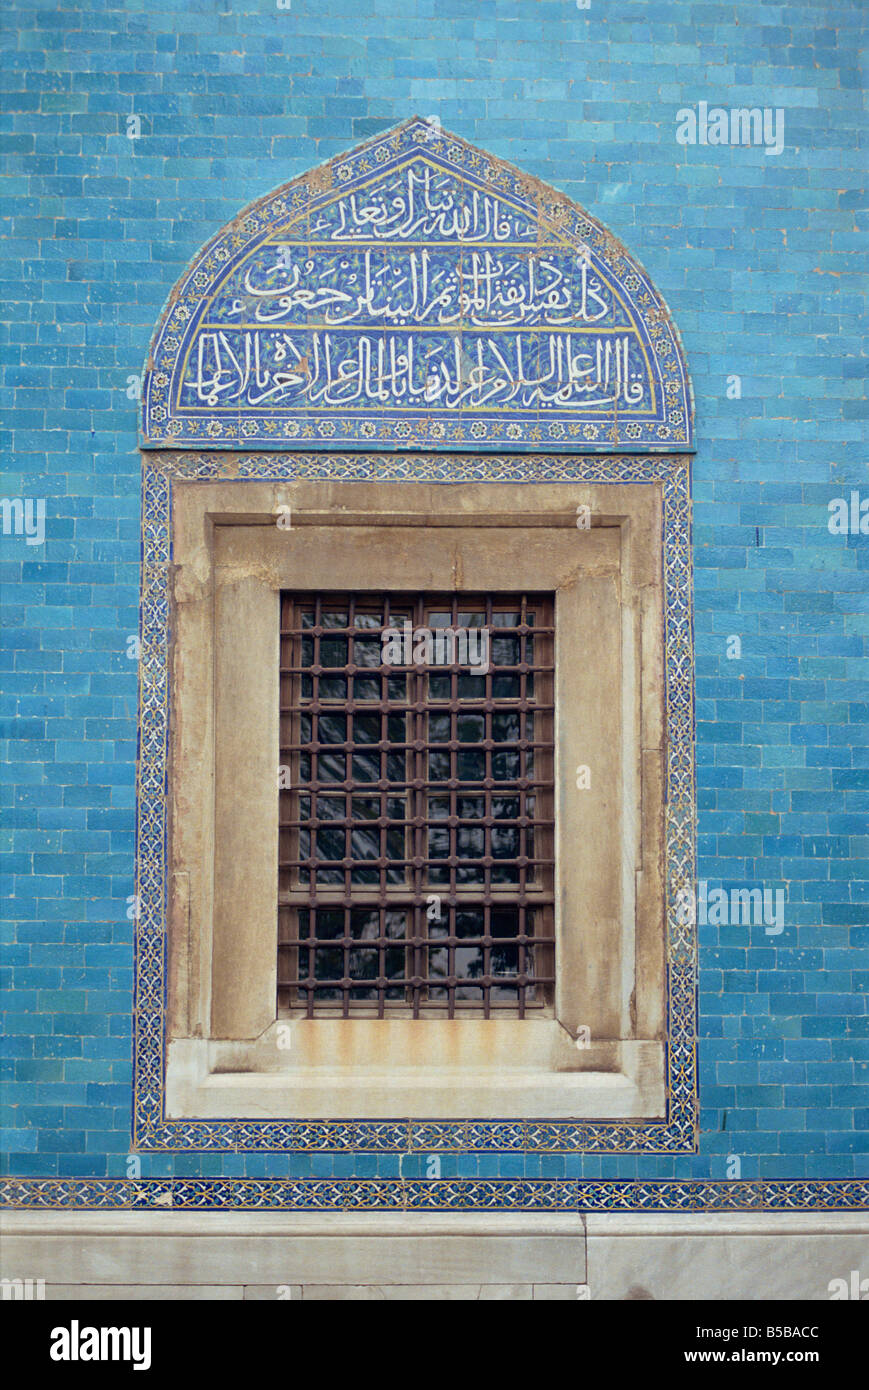 Detail of window with Arabic script on tilework above, in the Green Mosque in Bursa, Anatolia, Turkey Minor, Eurasia - Stock Image